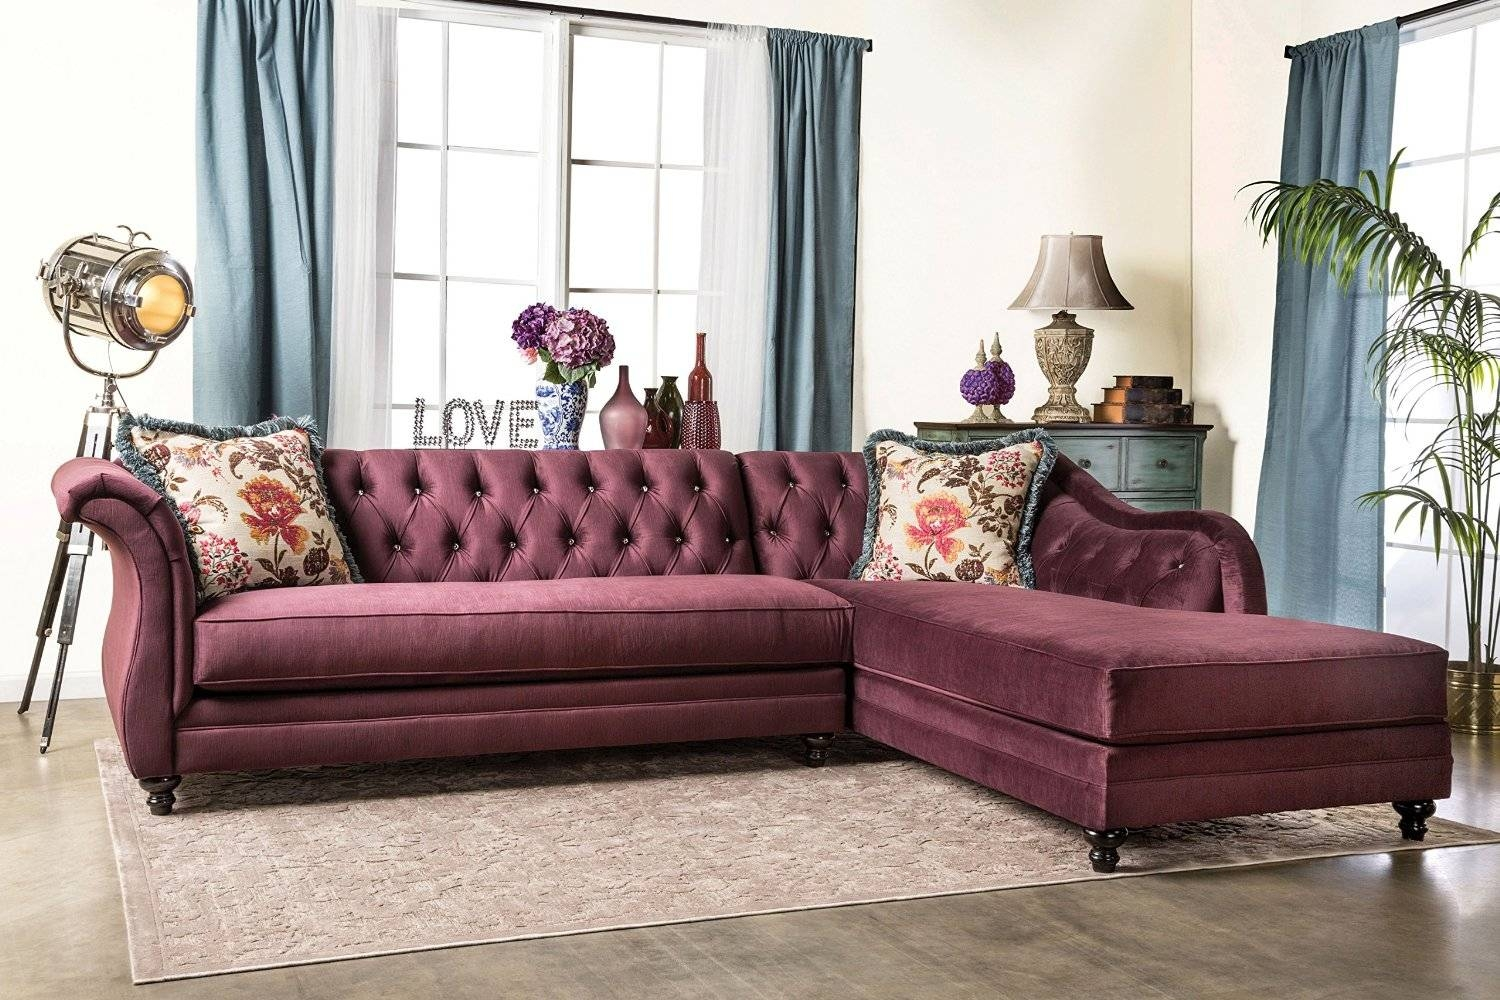 25 Best Chesterfield Sofas To Buy In 2017 pertaining to Leather Chesterfield Sofas (Image 2 of 30)